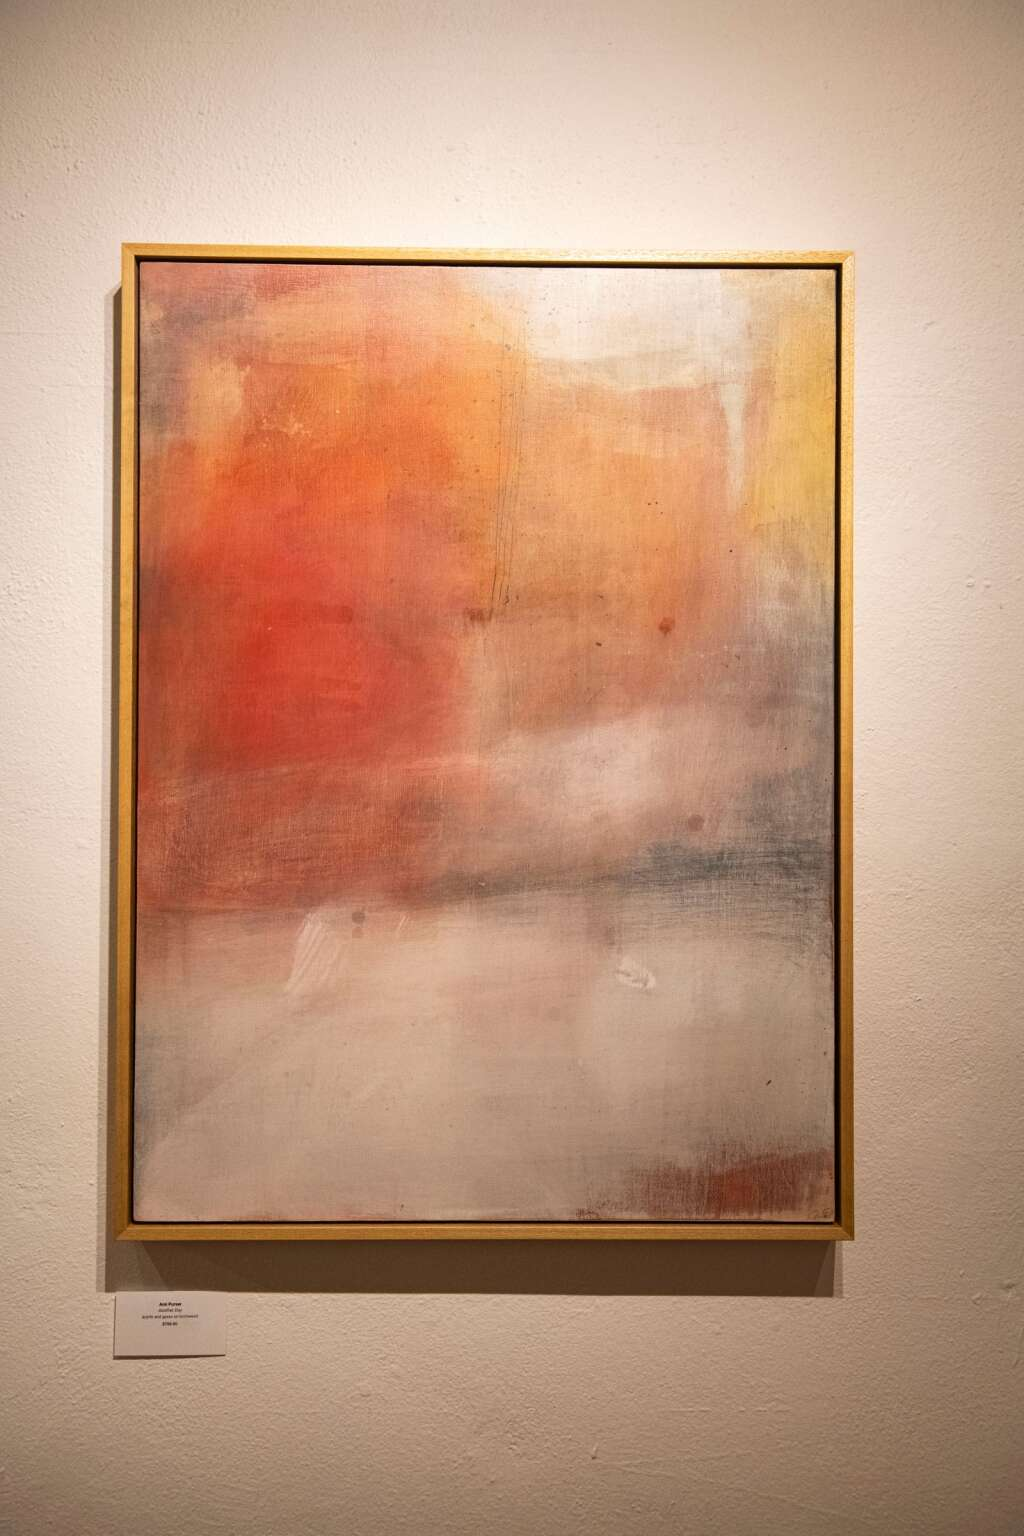 'Another Day' by Ami Purser is displayed in the Line and Form exhibition in the Red Brick Center for the Arts in Aspen on Wednesday, June 2, 2021. (Kelsey Brunner/The Aspen Times)